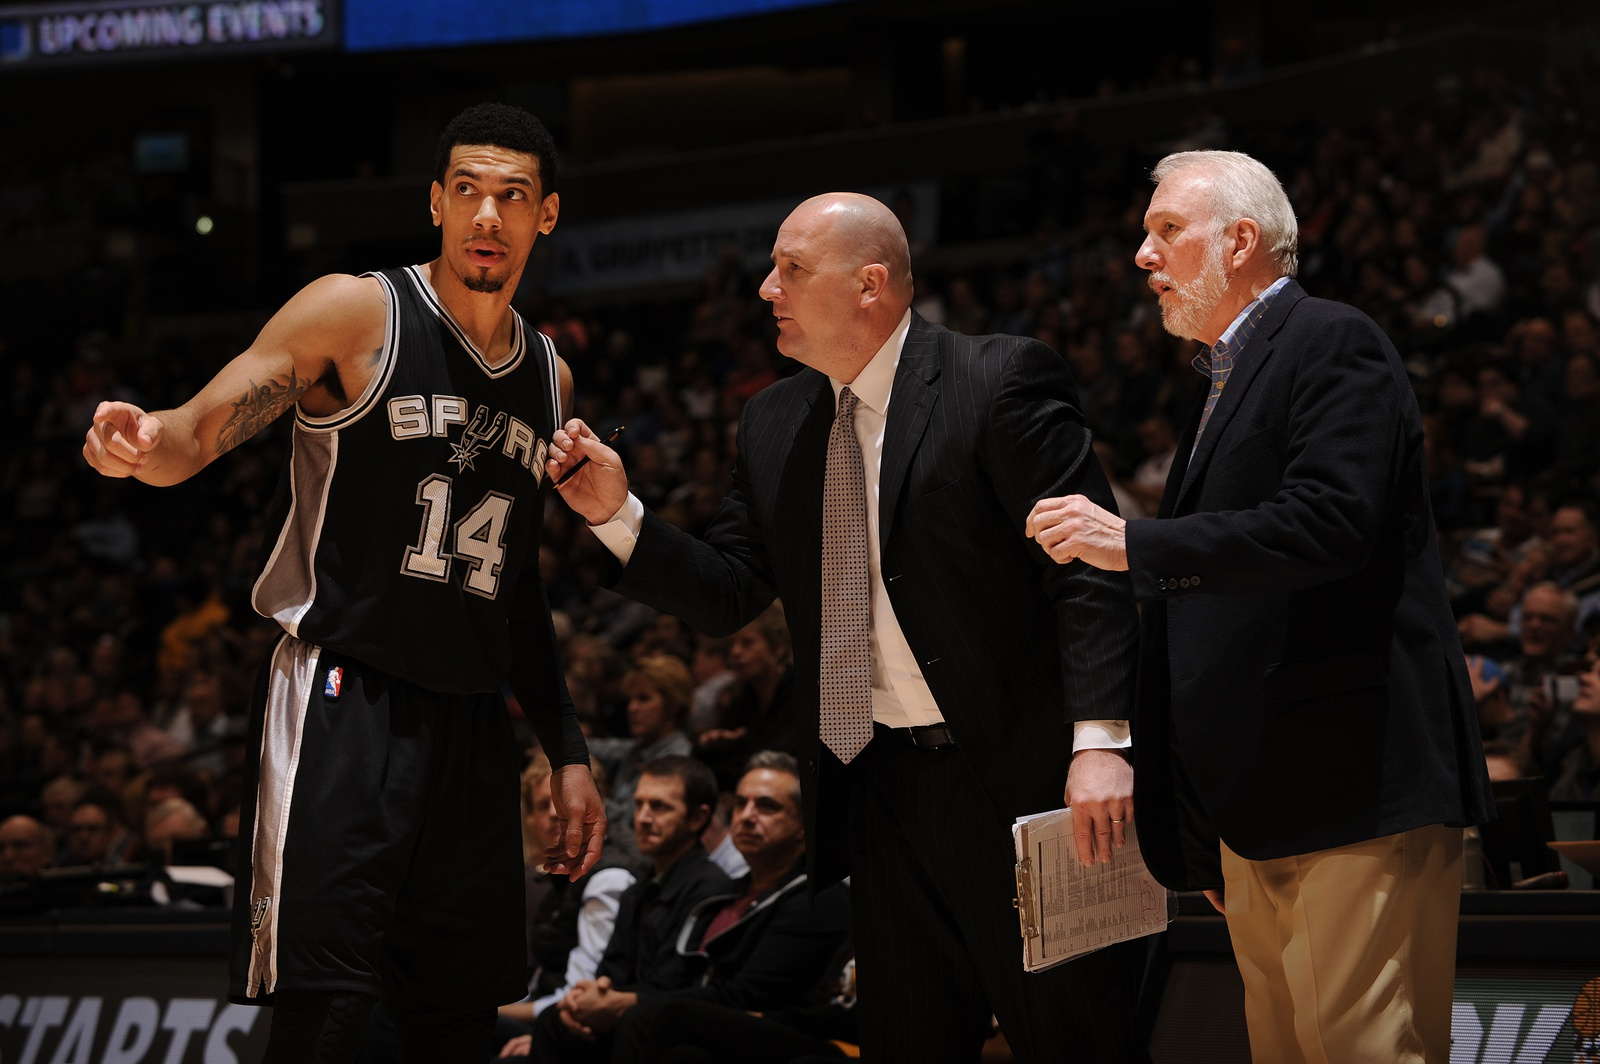 Danny Green #14, Jim Boylen and Gregg Popovich of the San Antonio Spurs speak during a game against the Denver Nuggets speaks on January 20, 2015 at the Pepsi Center in Denver, Colorado